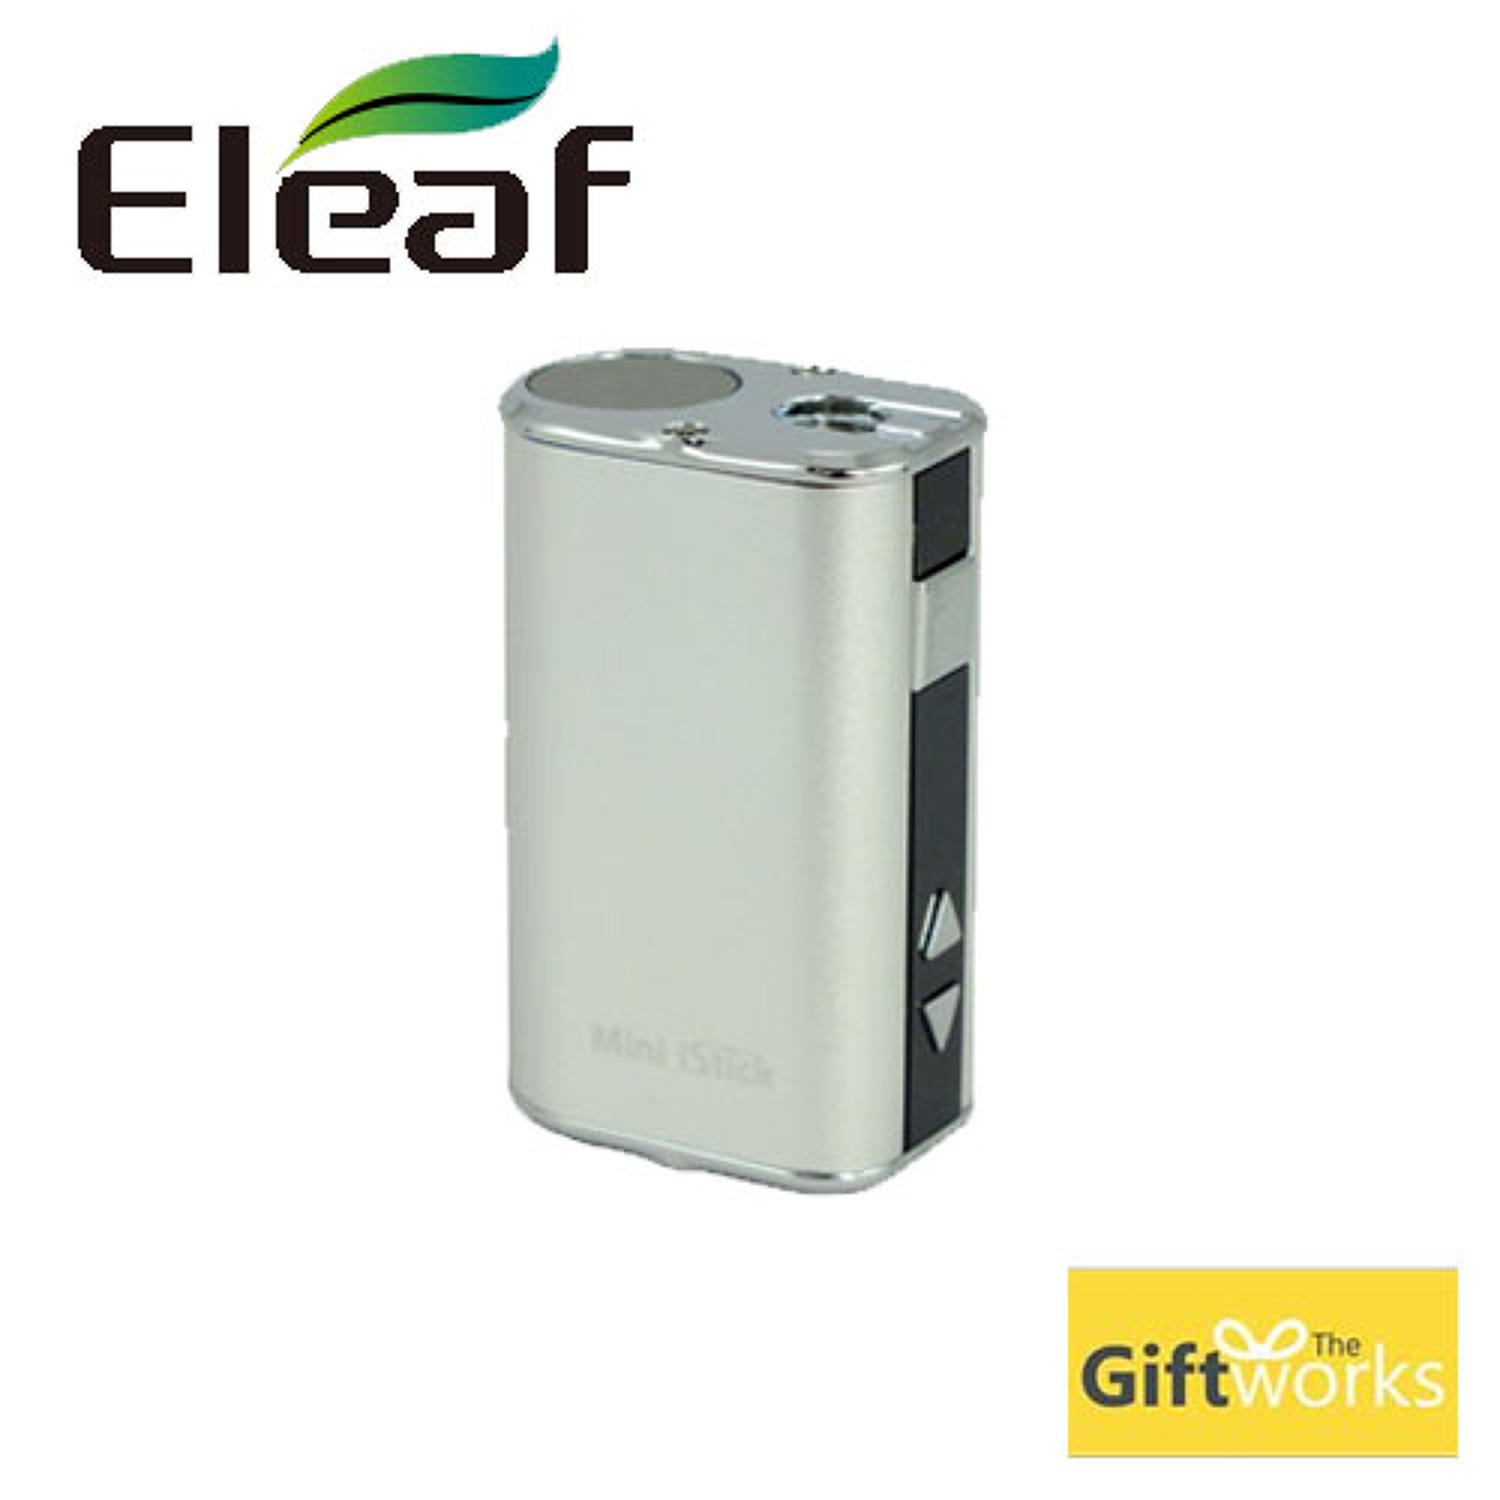 Eleaf - IStick Mini